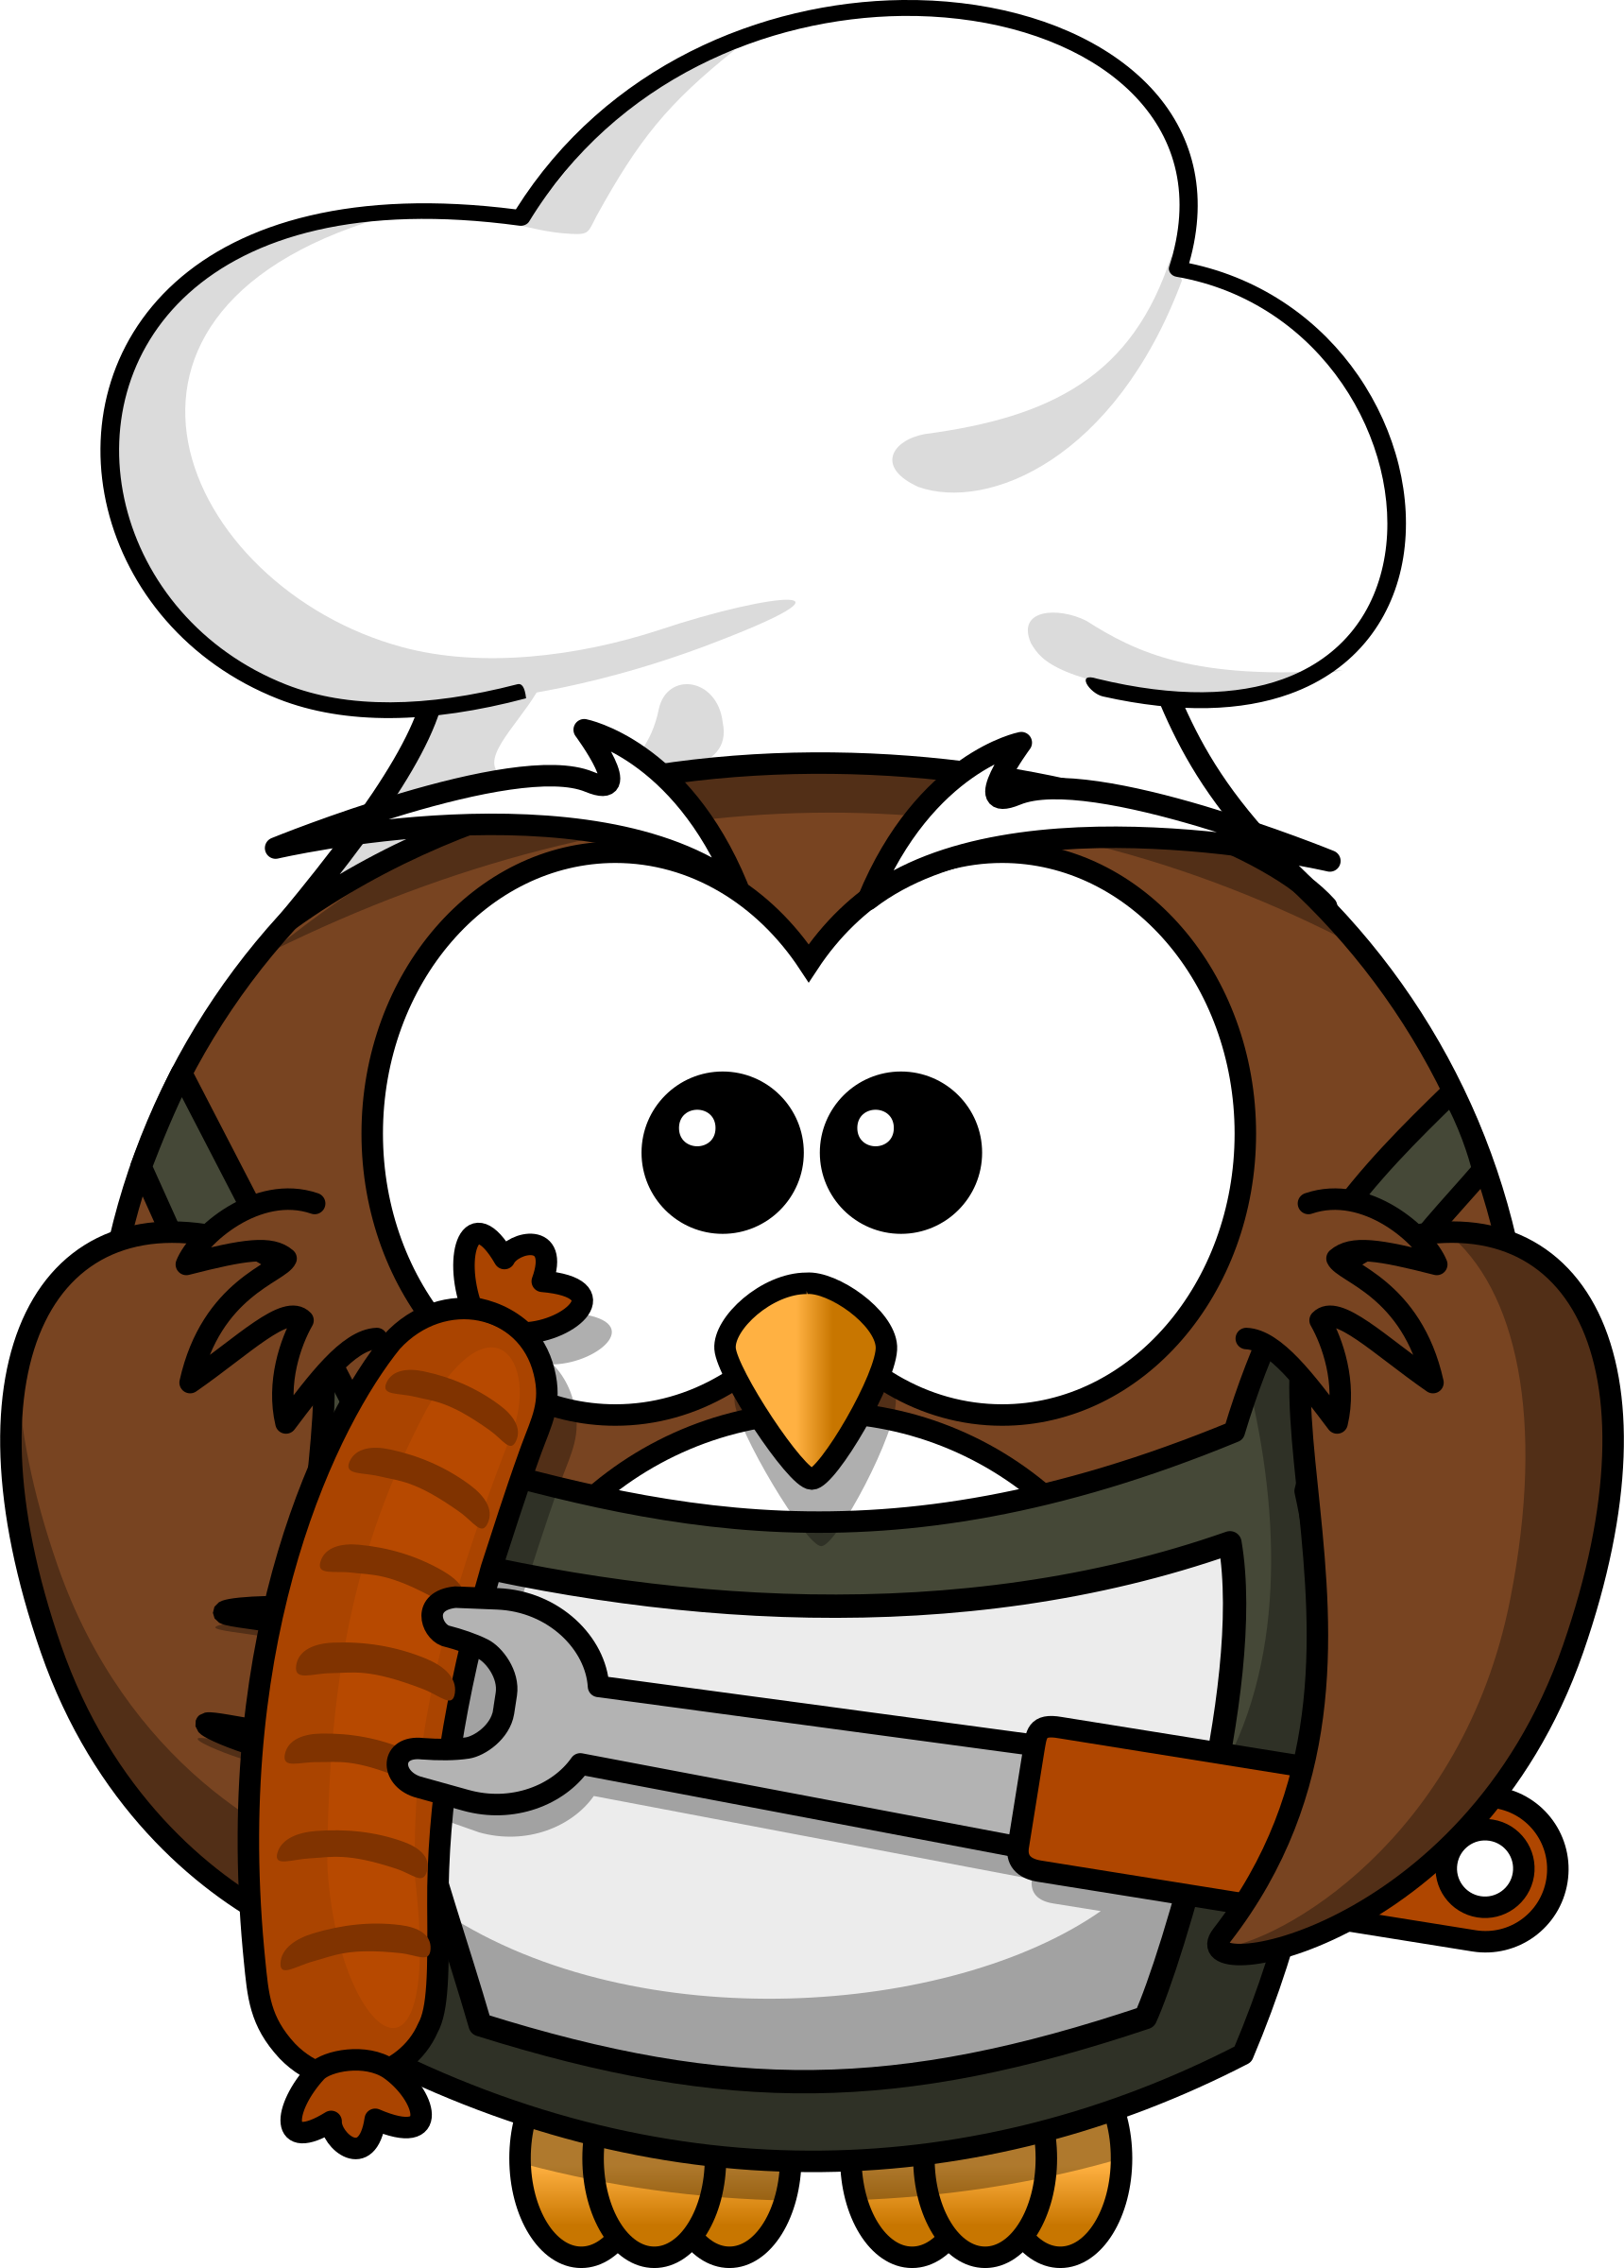 jpg black and white library Owl with sausage by. Grilling clipart chat